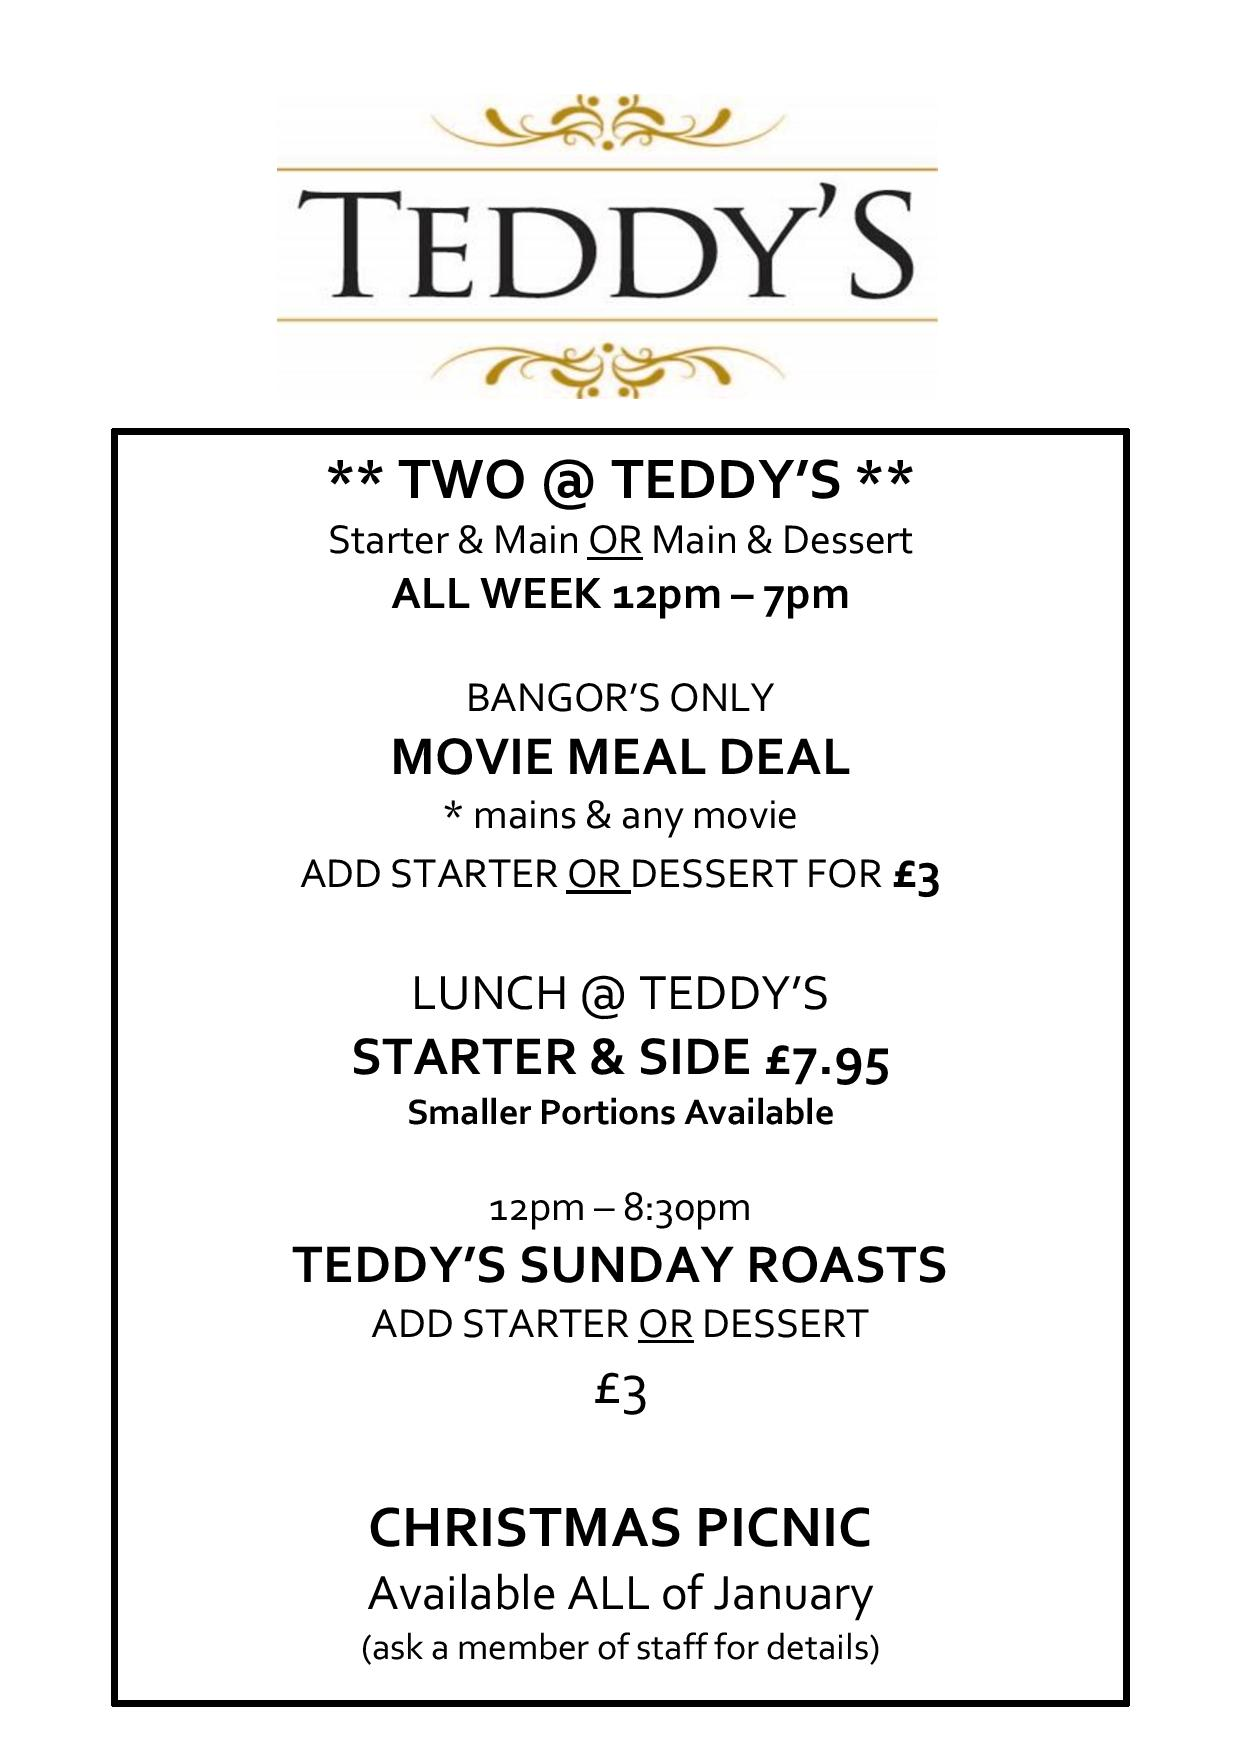 Teddys Offers